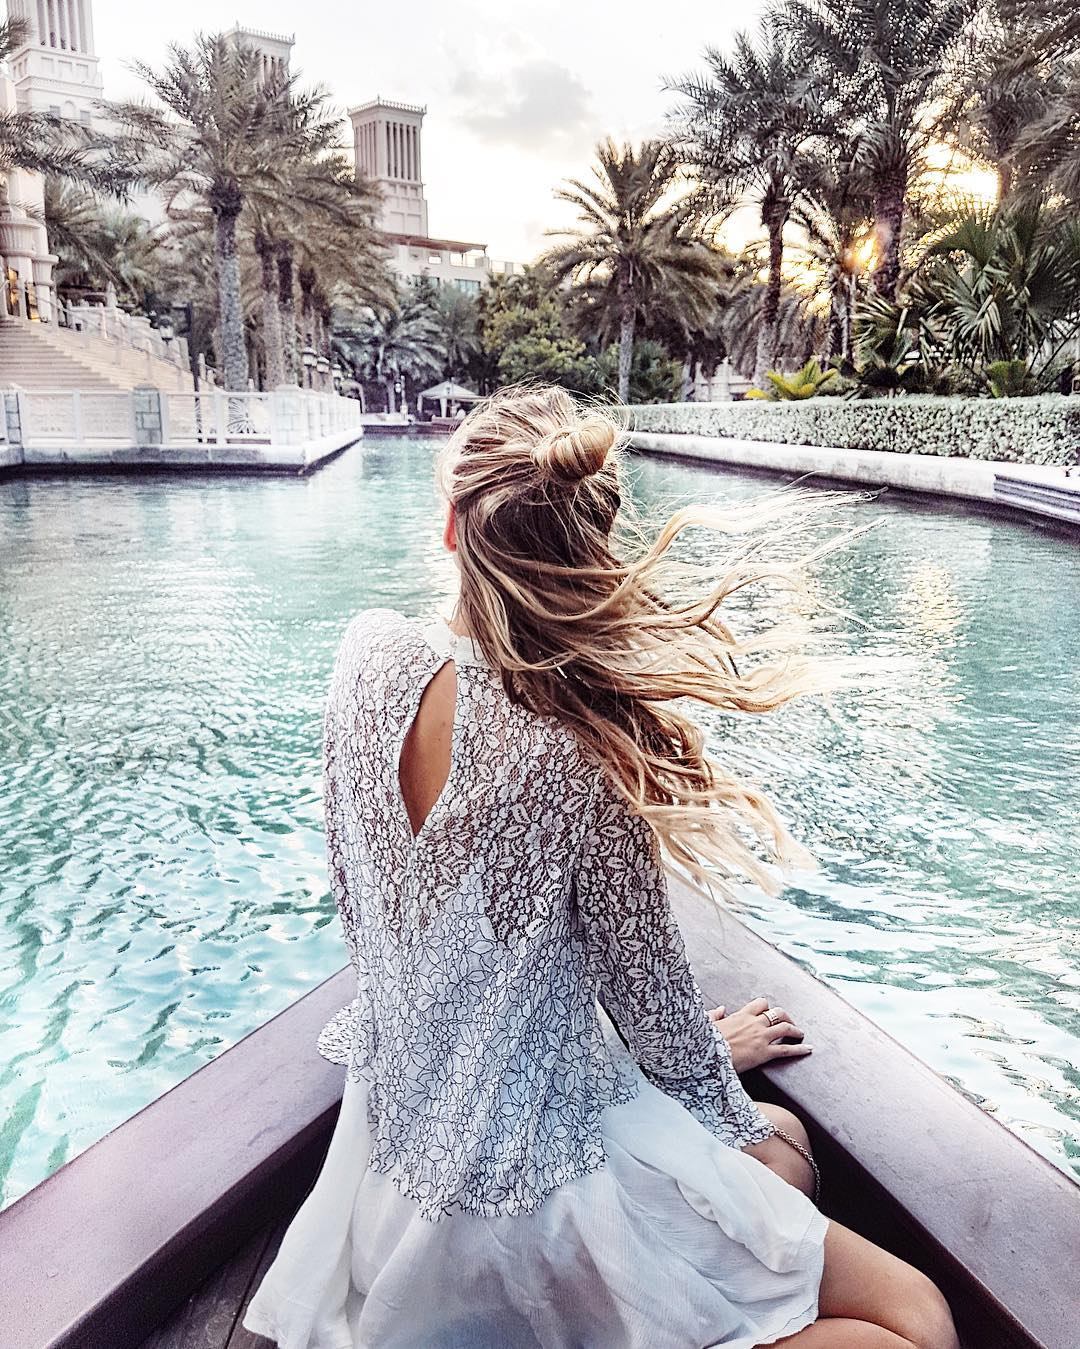 Fairy tale feels, floating into sunset. visitdubai dubai ad